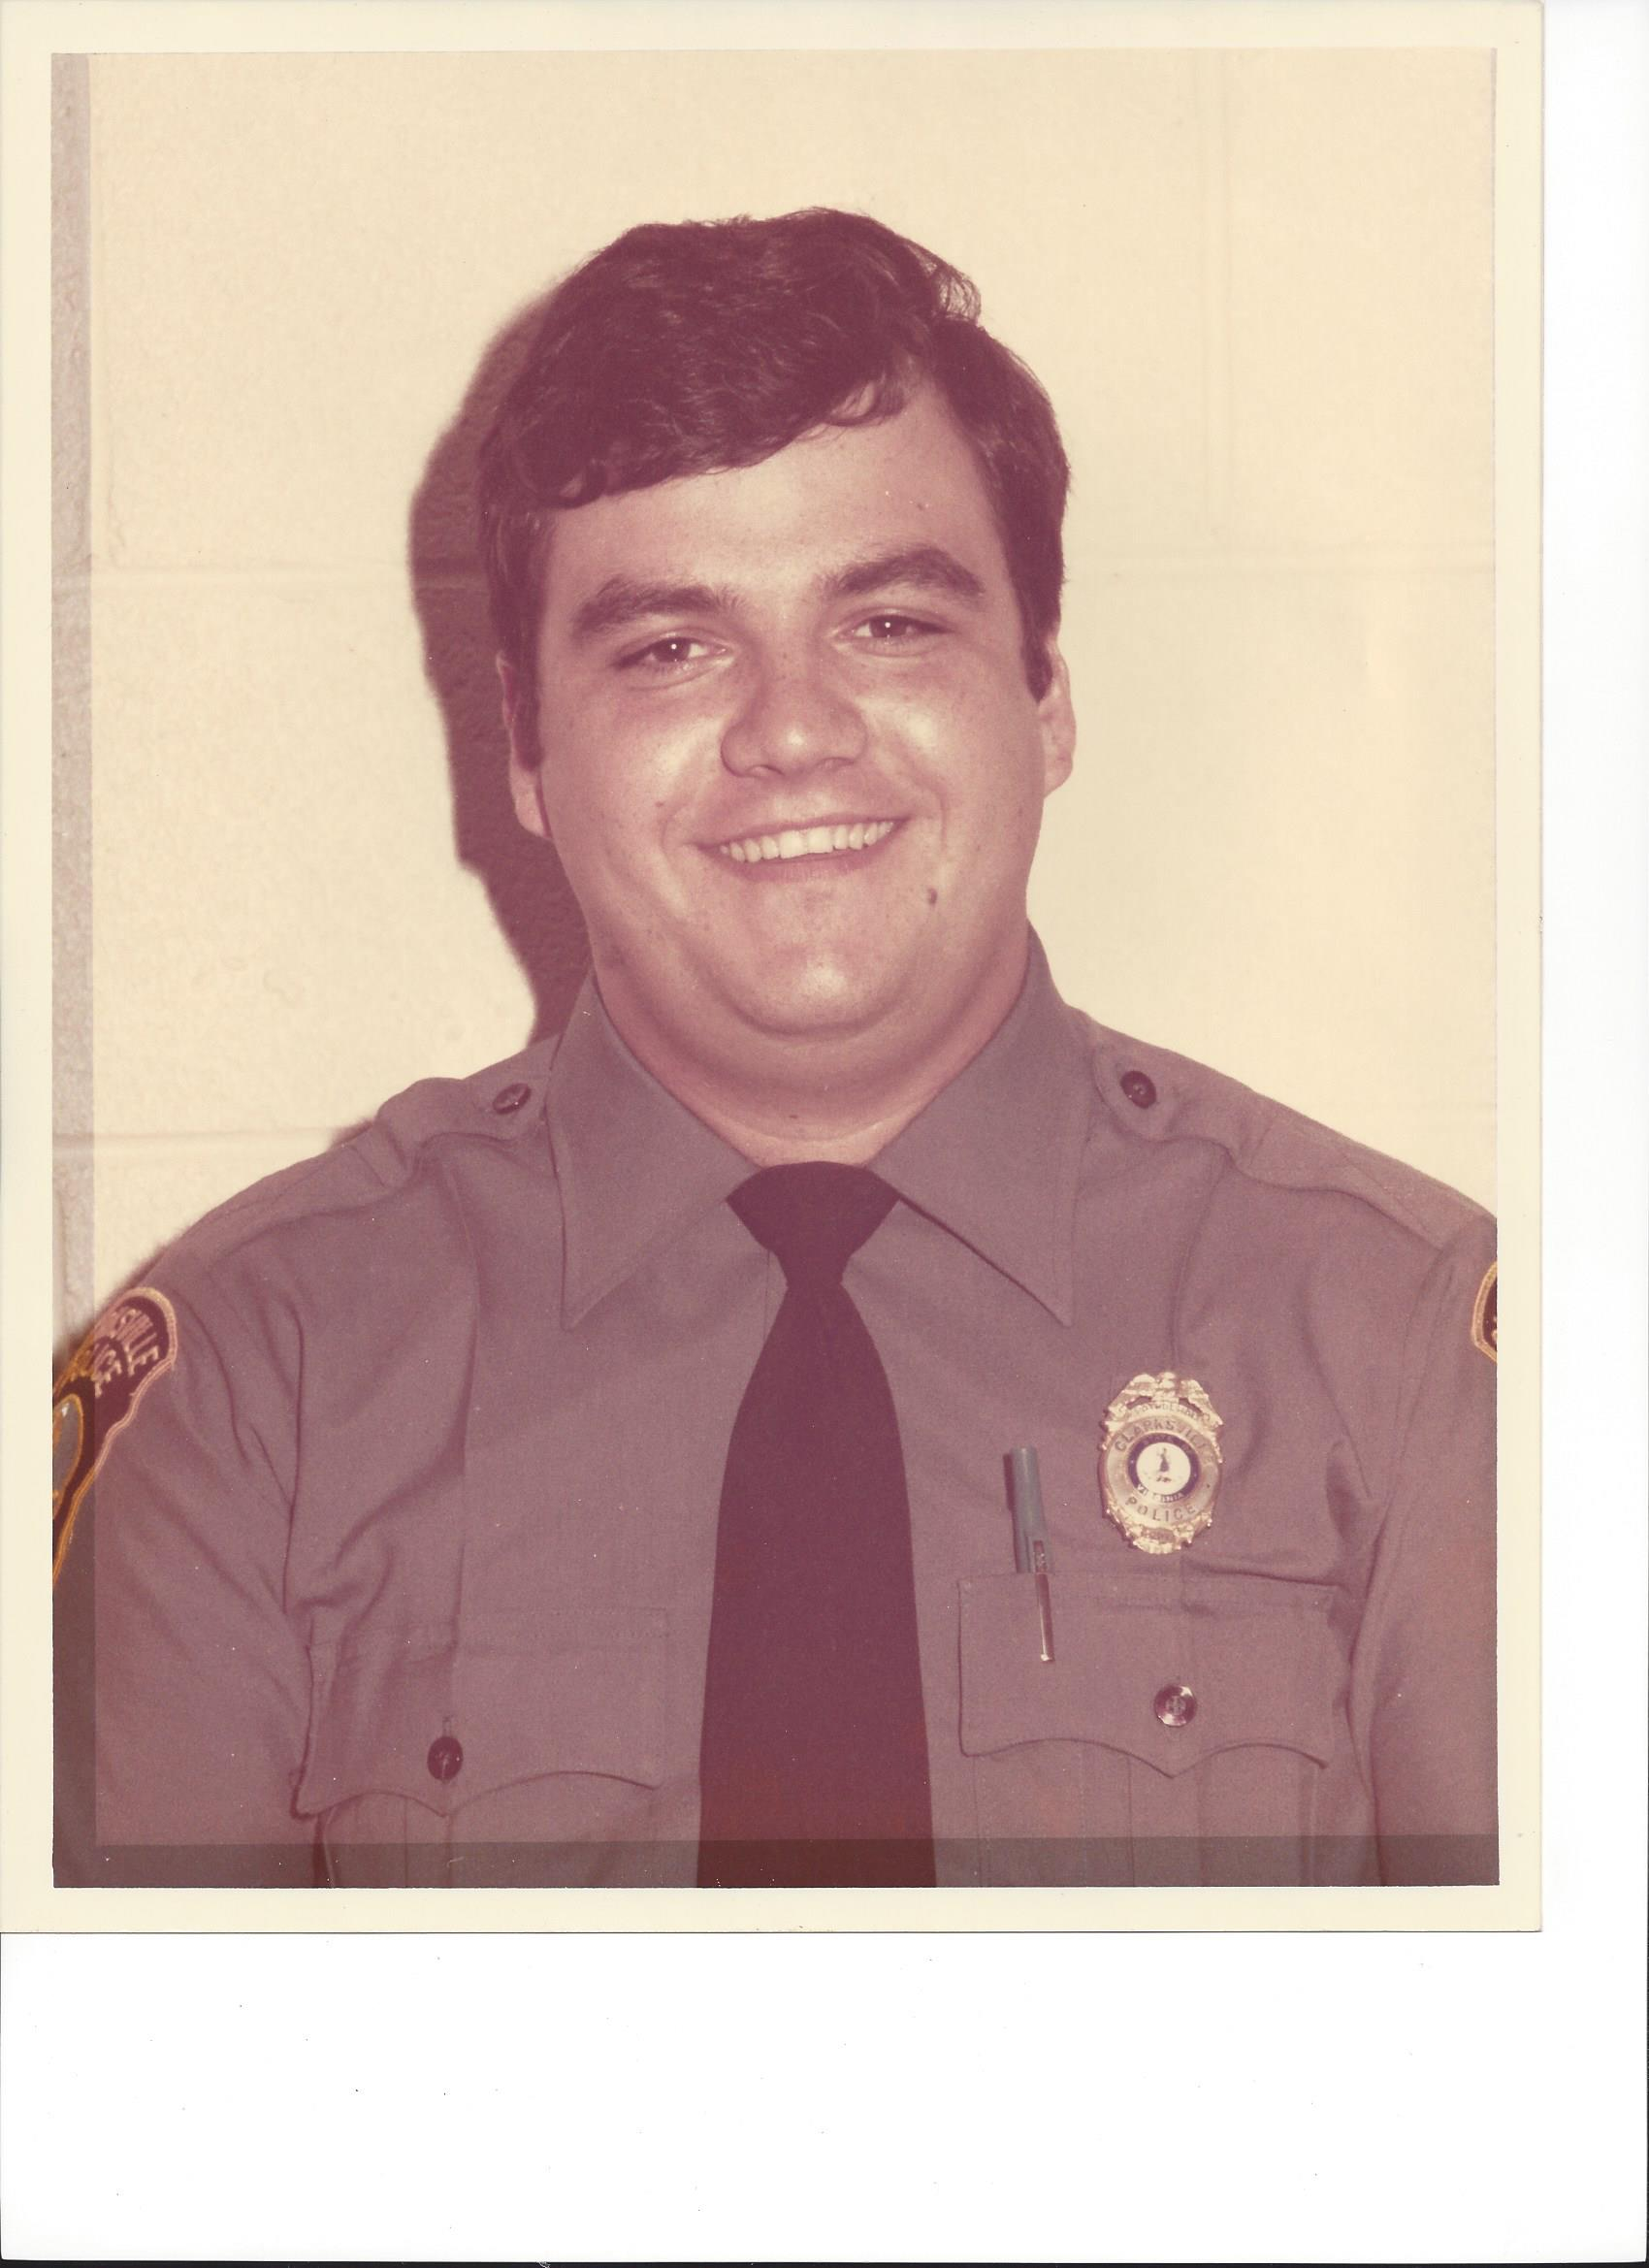 Police Officer Harvey Glenn Lawson, Jr. | Clarksville Police Department, Virginia